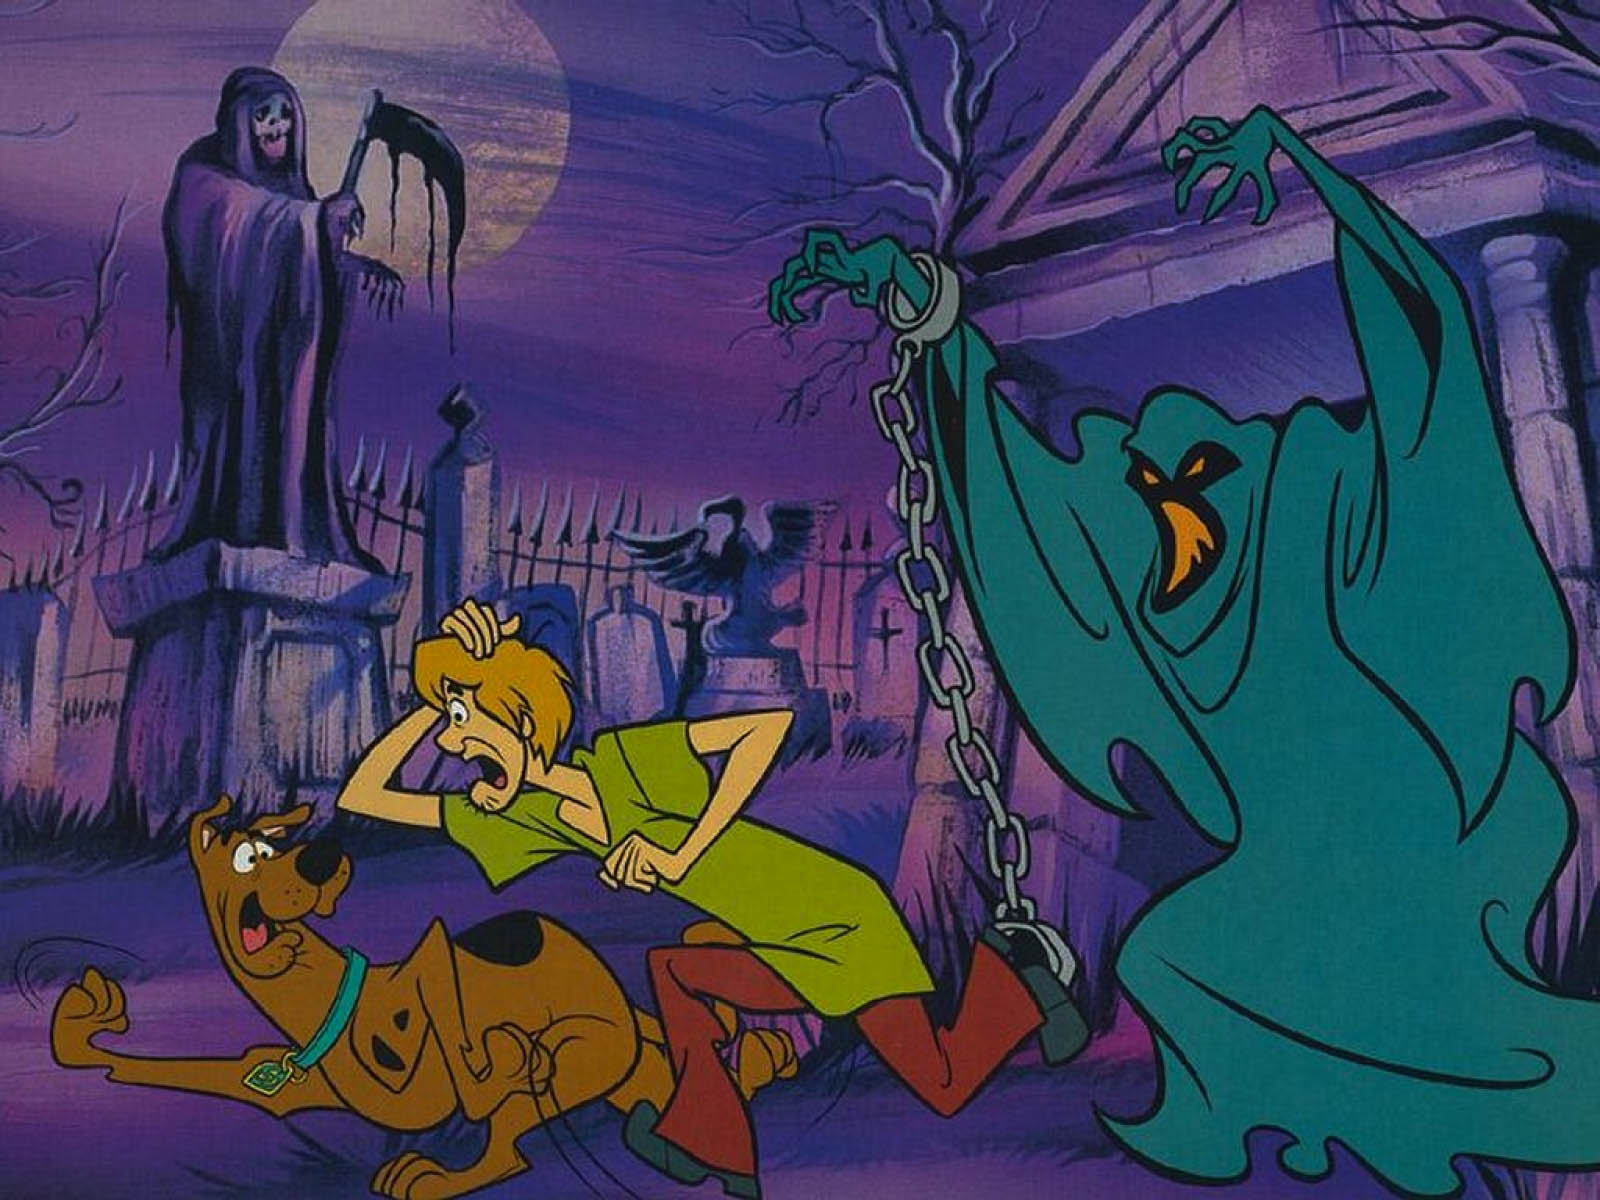 Scooby Doo Funny HD Wallpapers High Quality   All HD Wallpapers 1600x1200